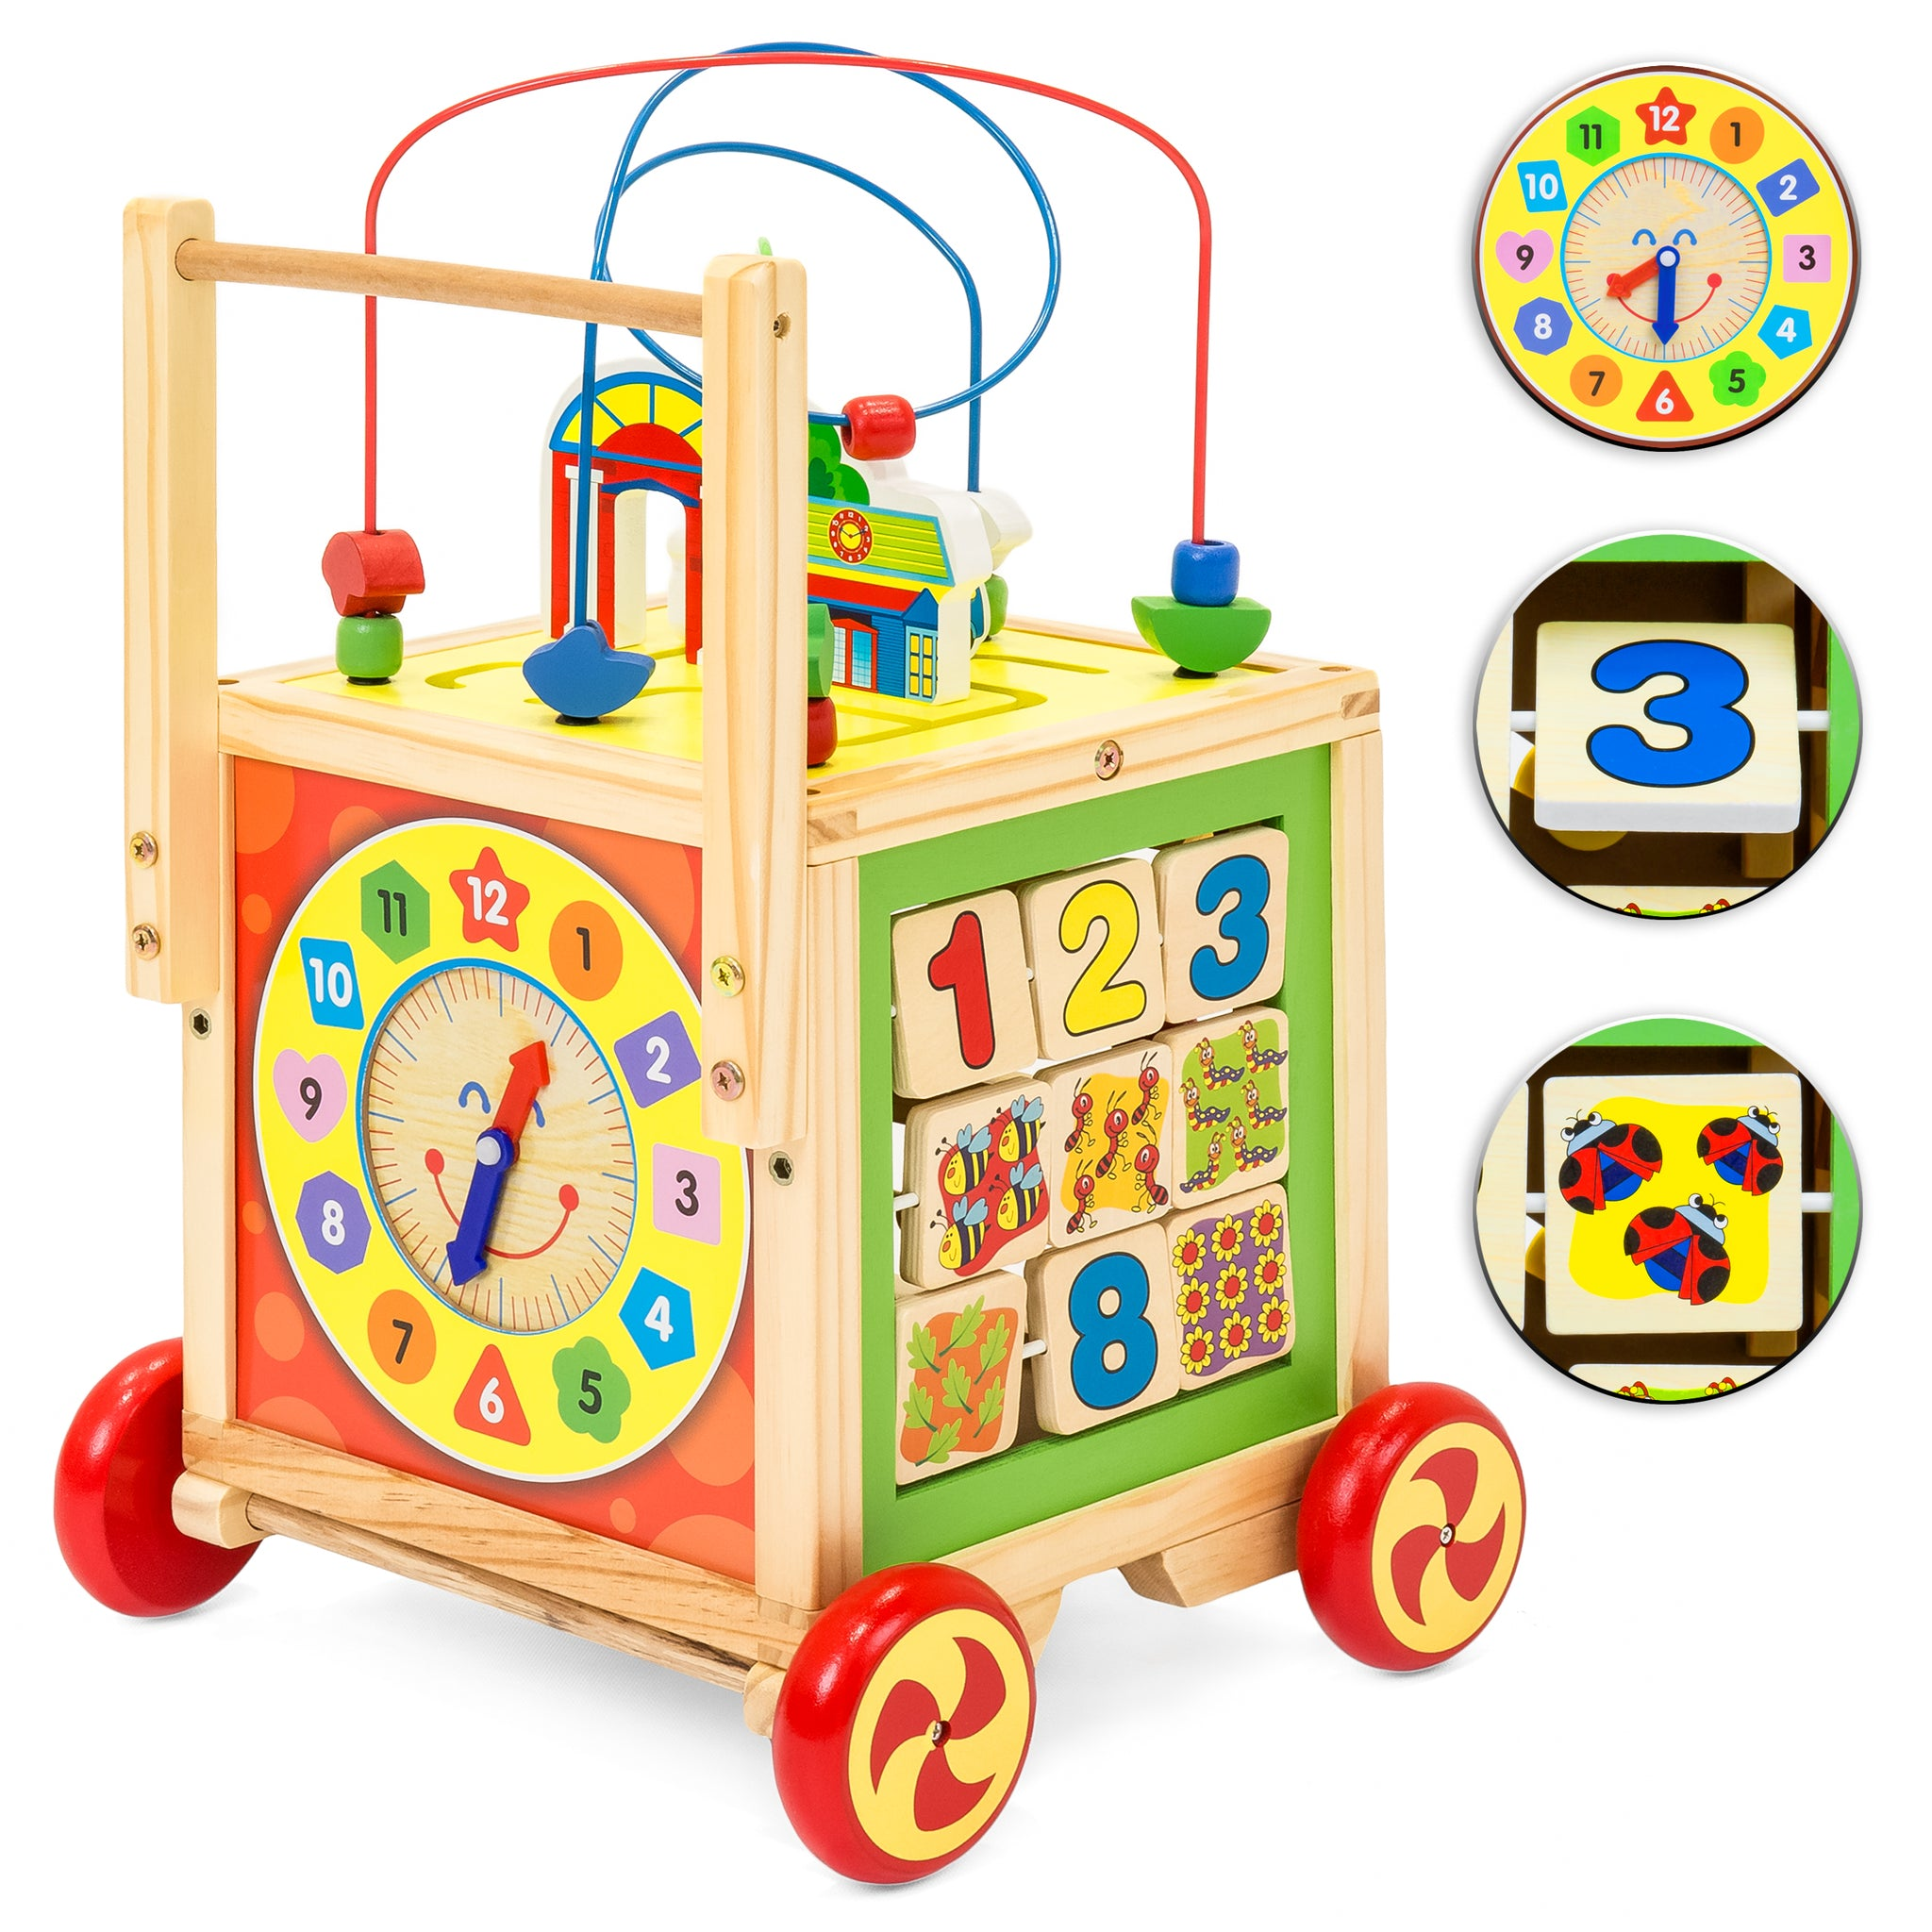 5 in 1 Wooden Toy Bead Maze Learning Activity Cube Set – Best